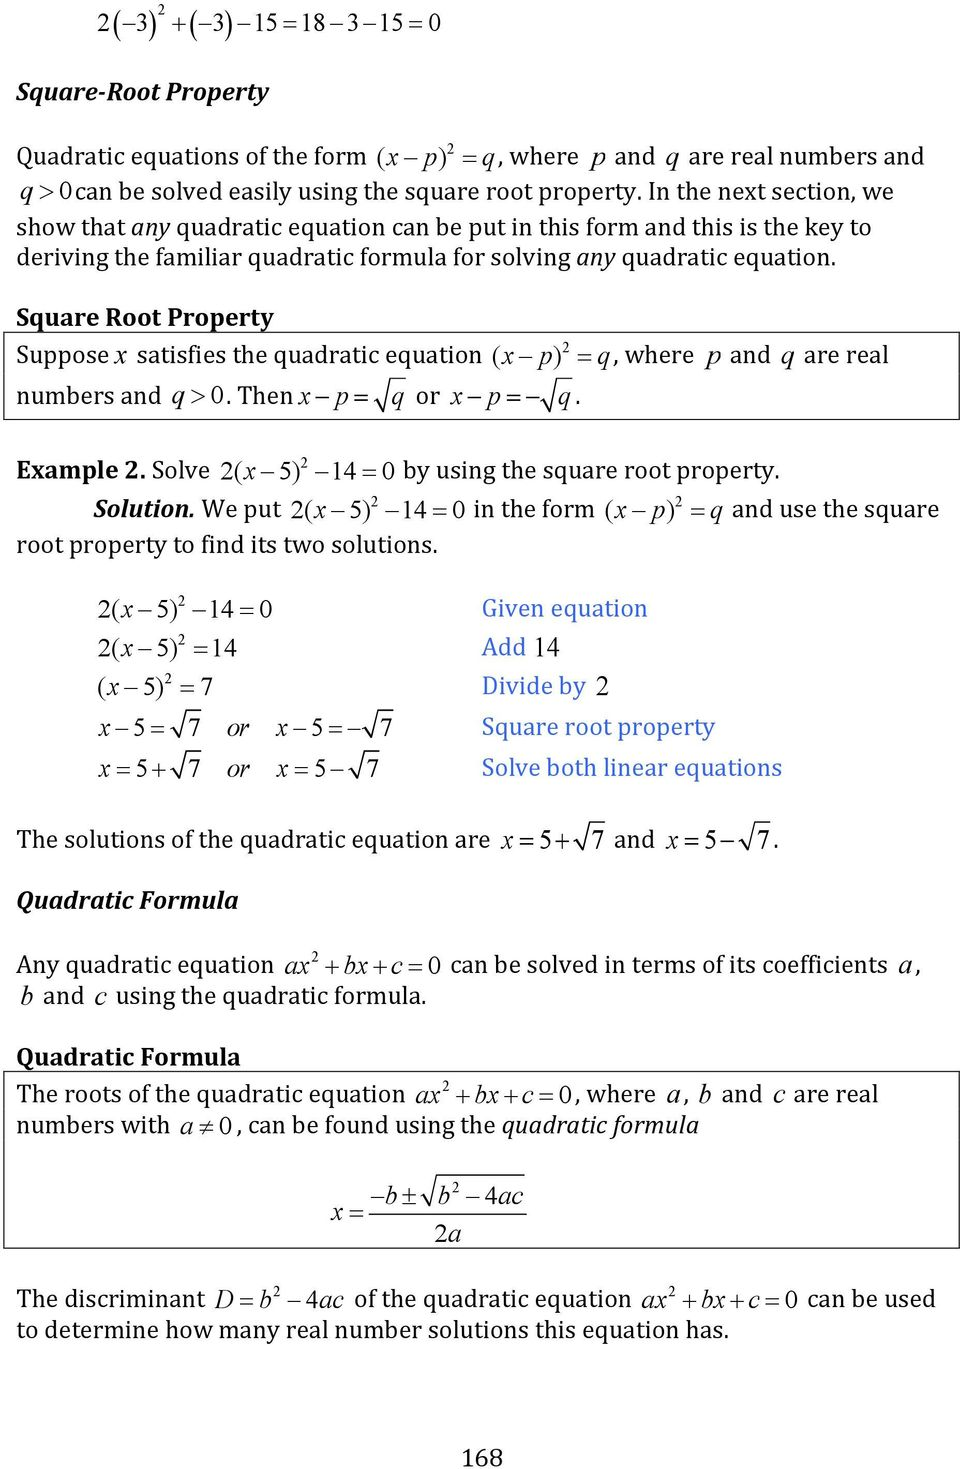 nelson function chapter 8 solutions pdf